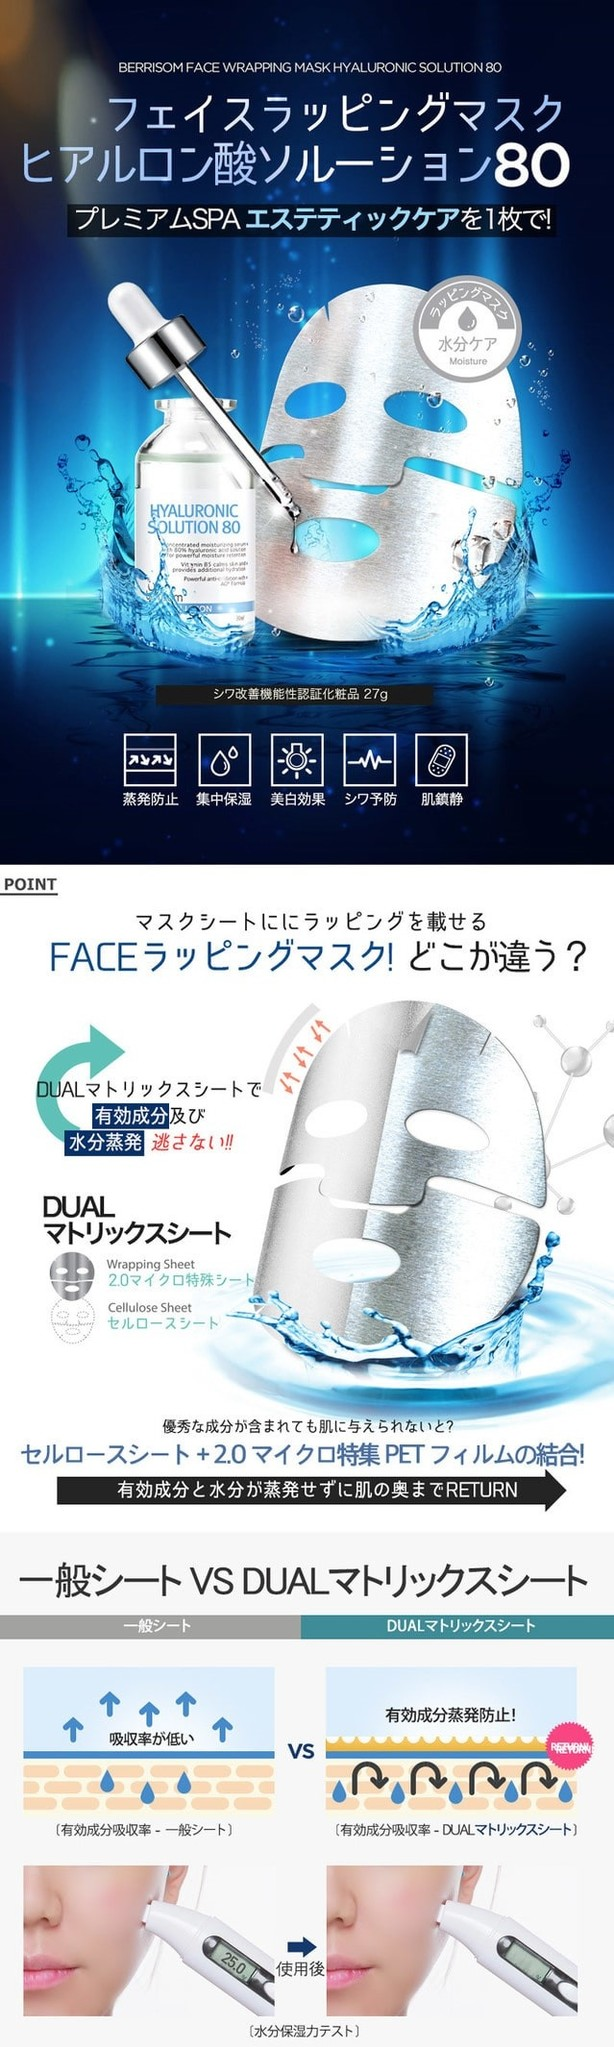 Face Wrapping Mask Hyaluronic Solution 80-2